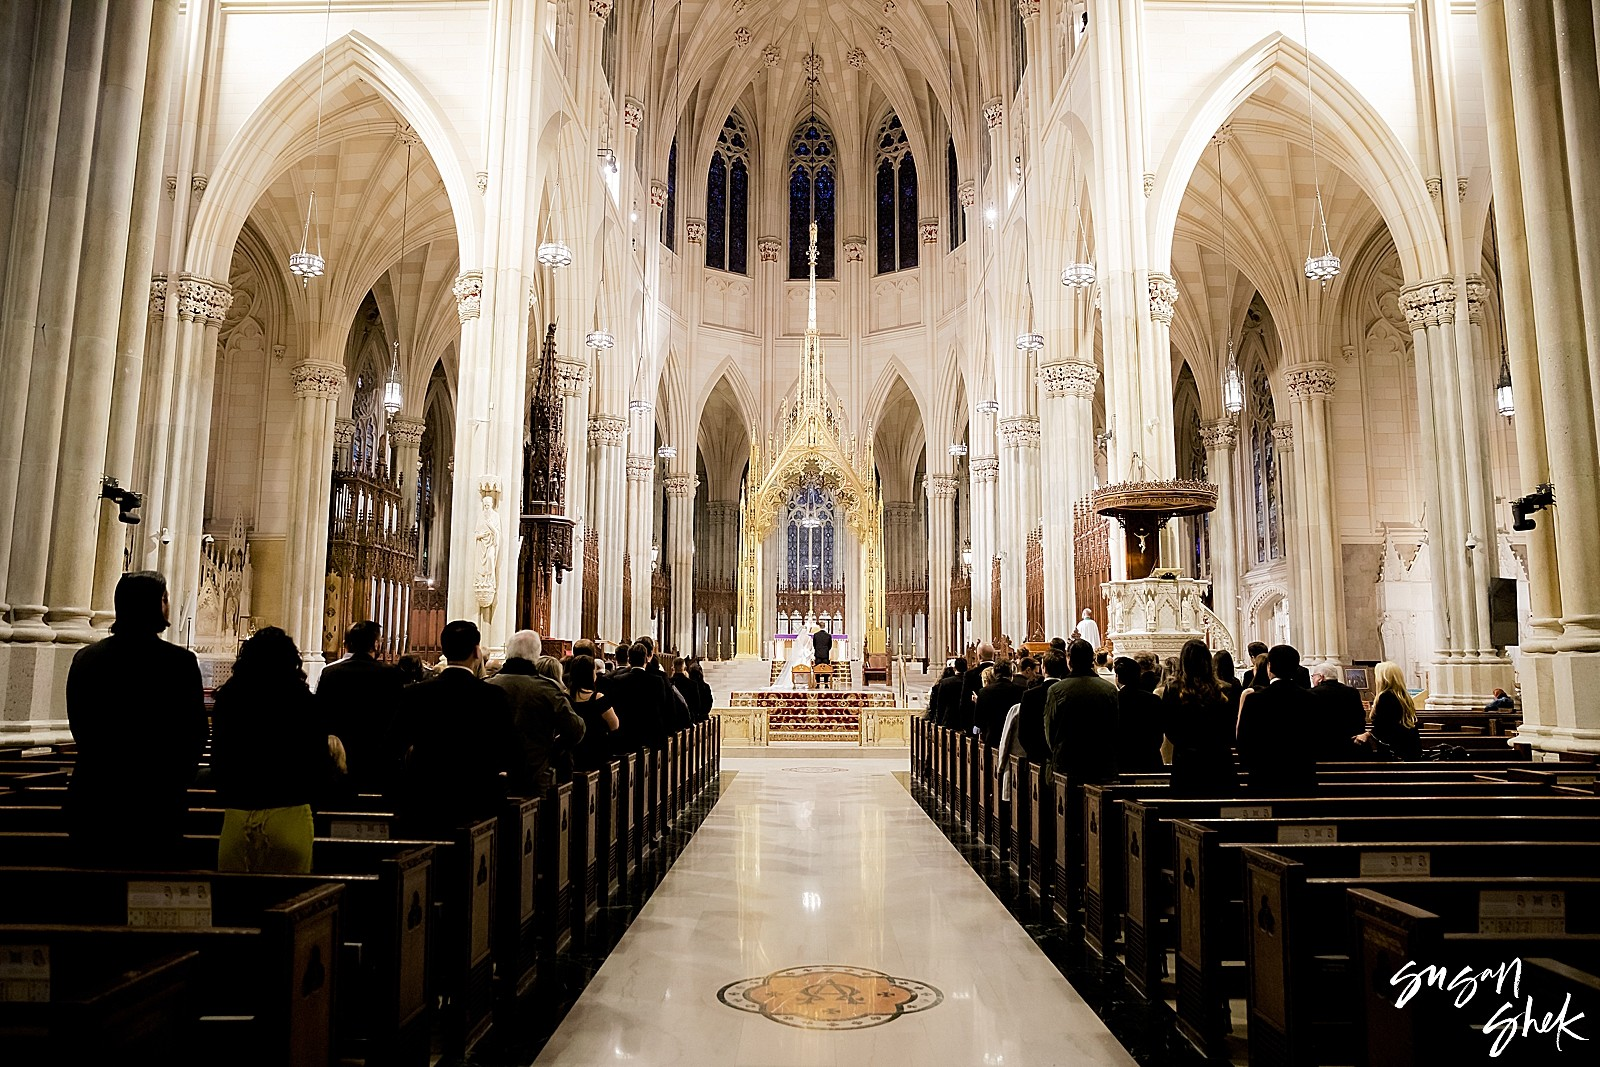 christian wedding traditions, catholic church, st patricks cathedral, wedding in new york city, nyc wedding photographer, wedding photographer, susan shek photography